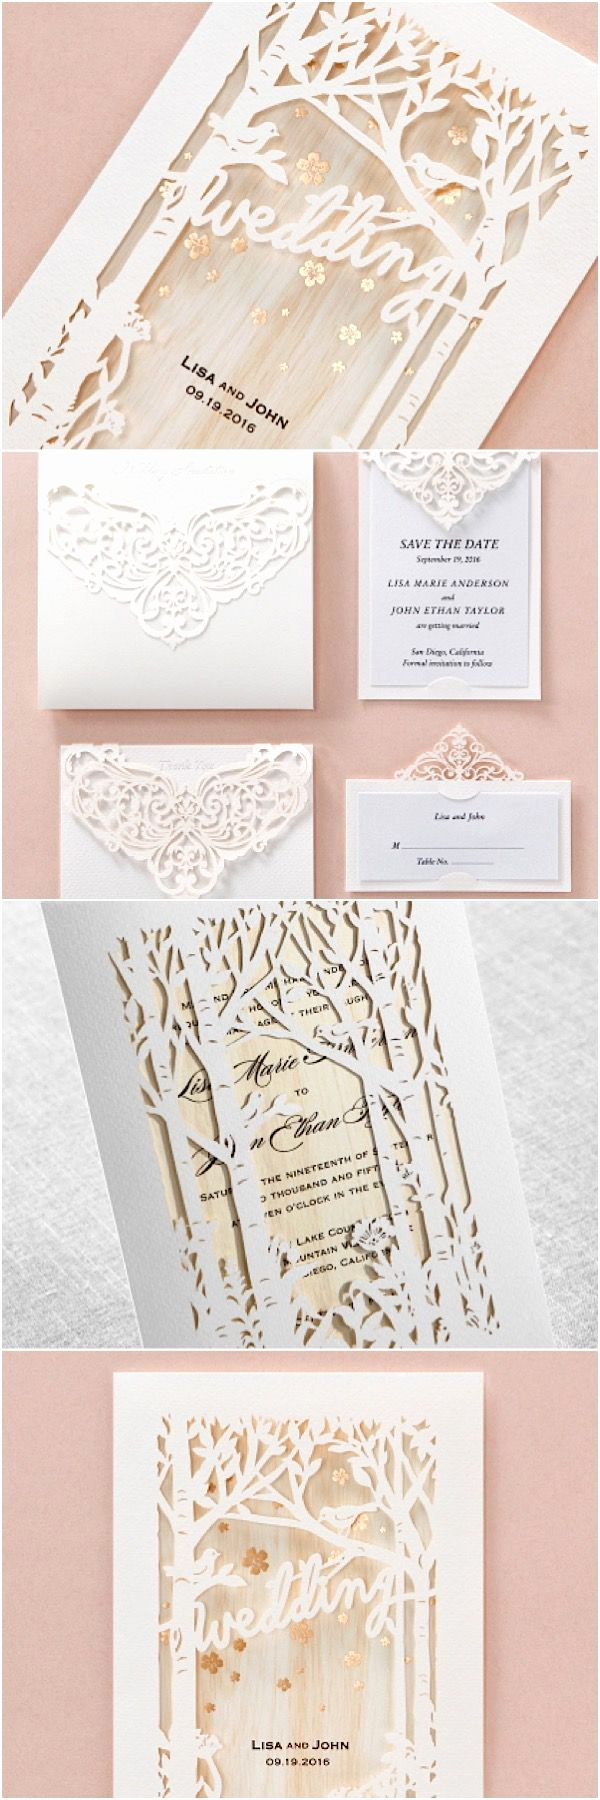 Cricut Wedding Invitation Templates Inspirational Best 25 Cricut Wedding Invitations Ideas On Pinterest